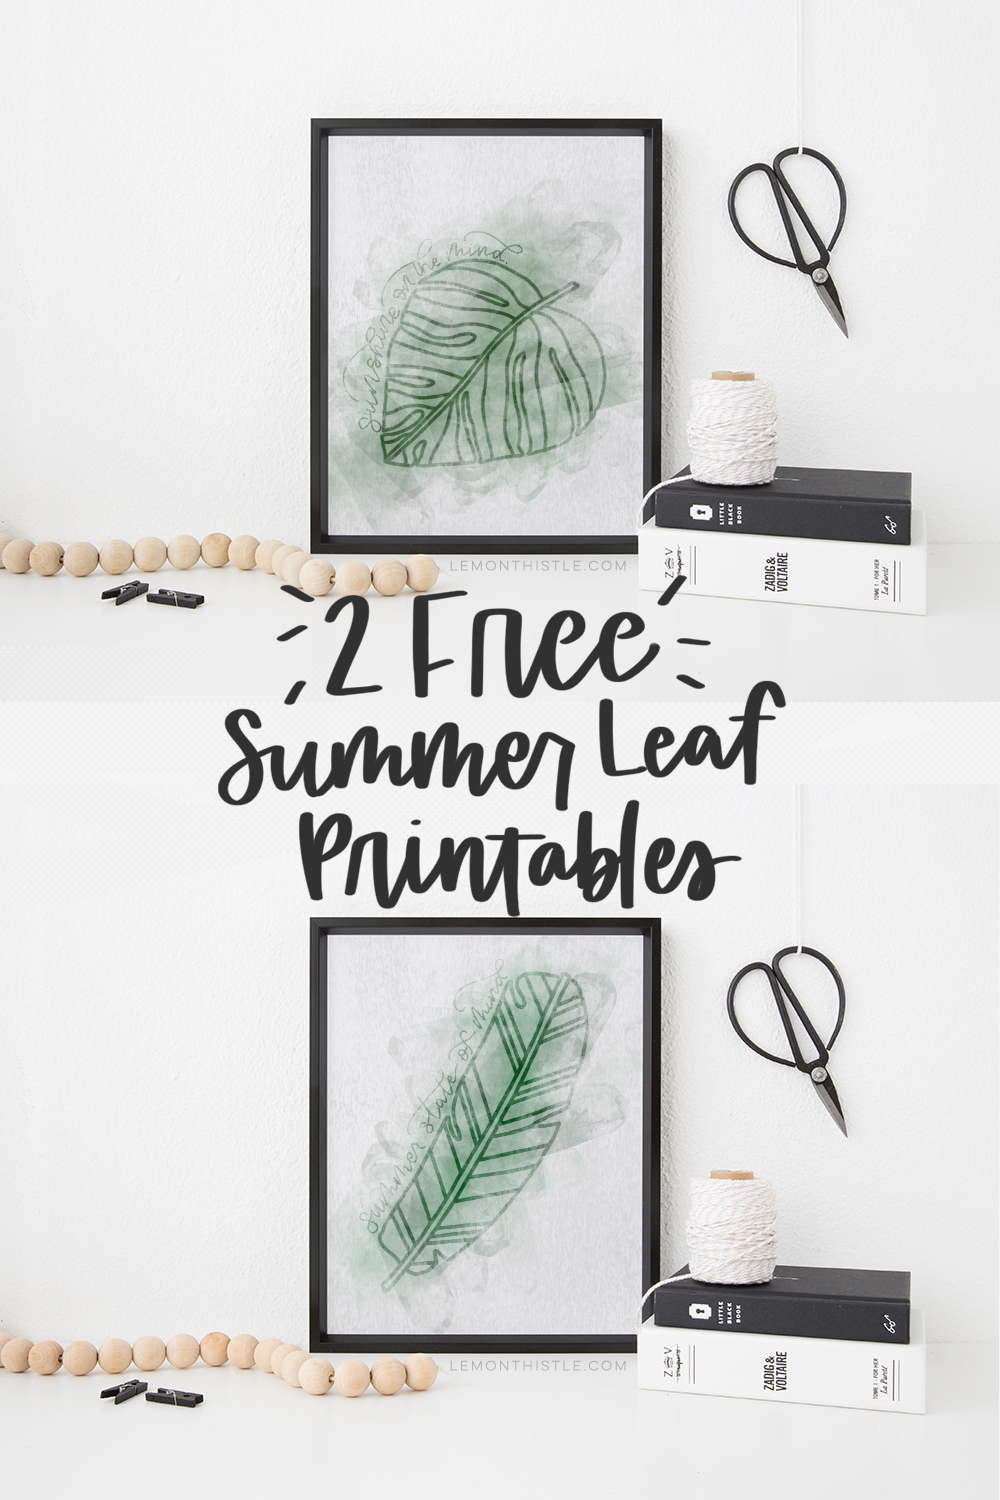 2 free summer leaf printables with text overlay